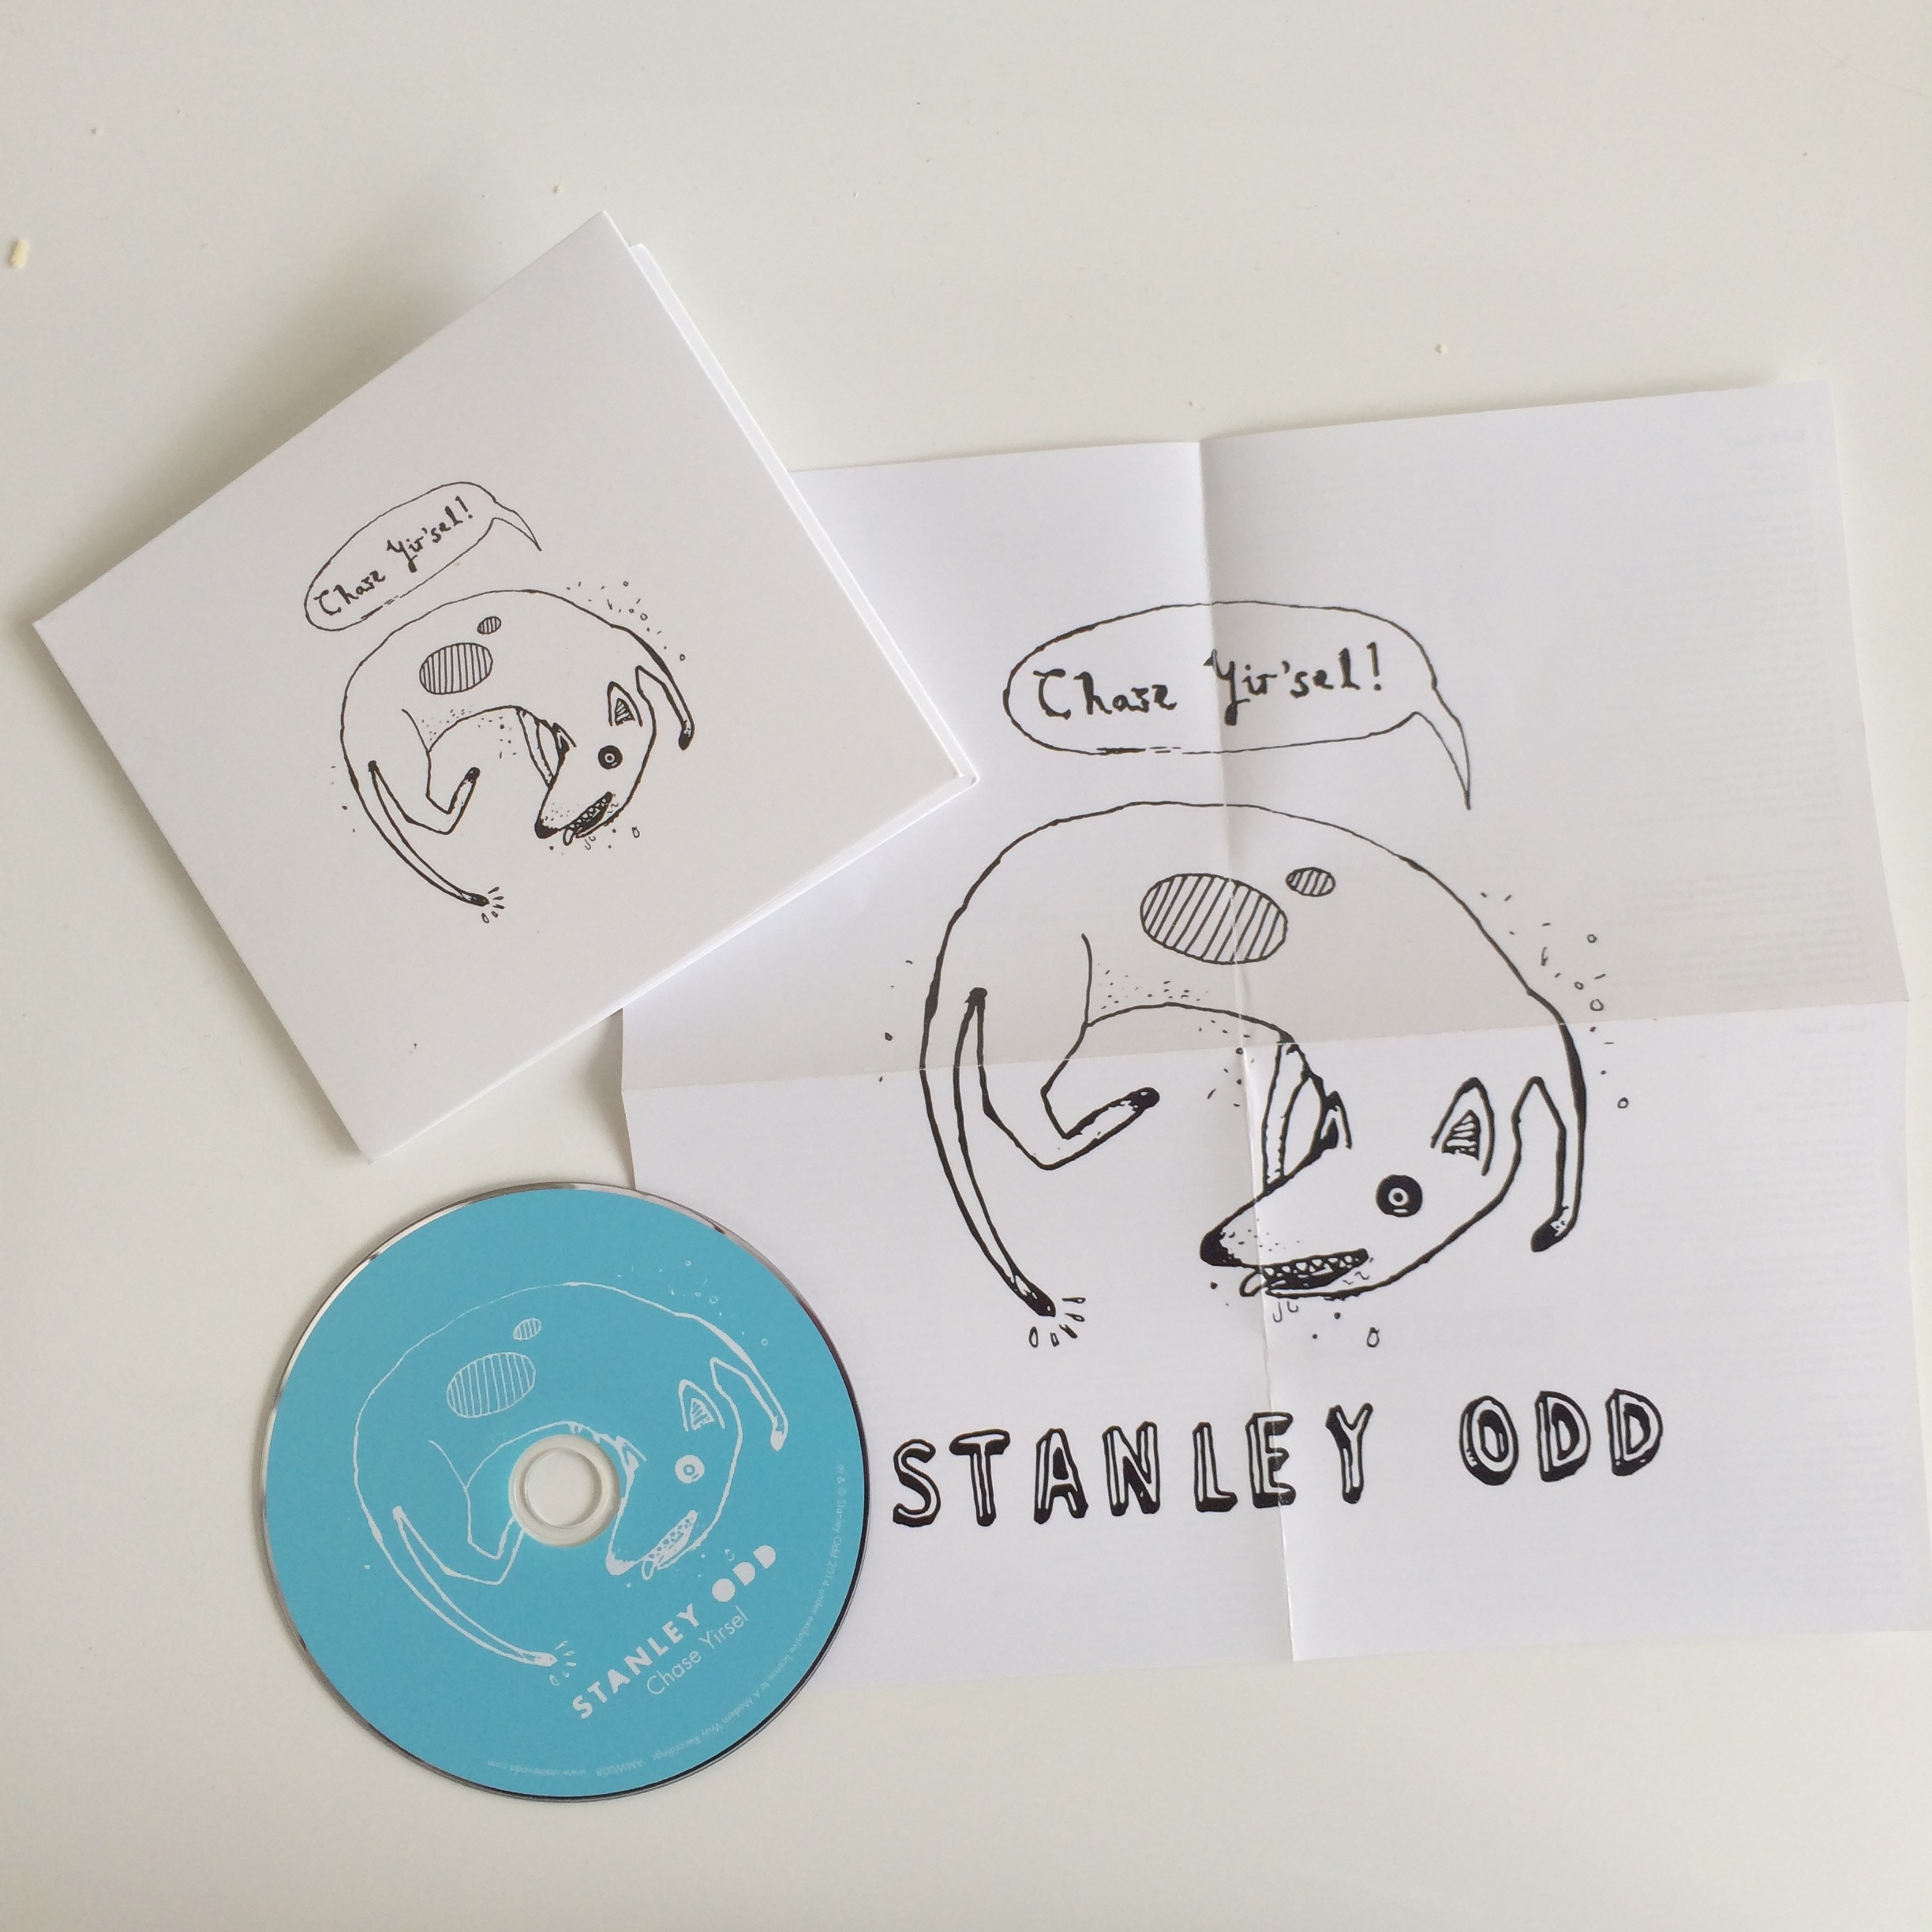 Chase Yirsel - EP (inc. immediate download) - Stanley Odd